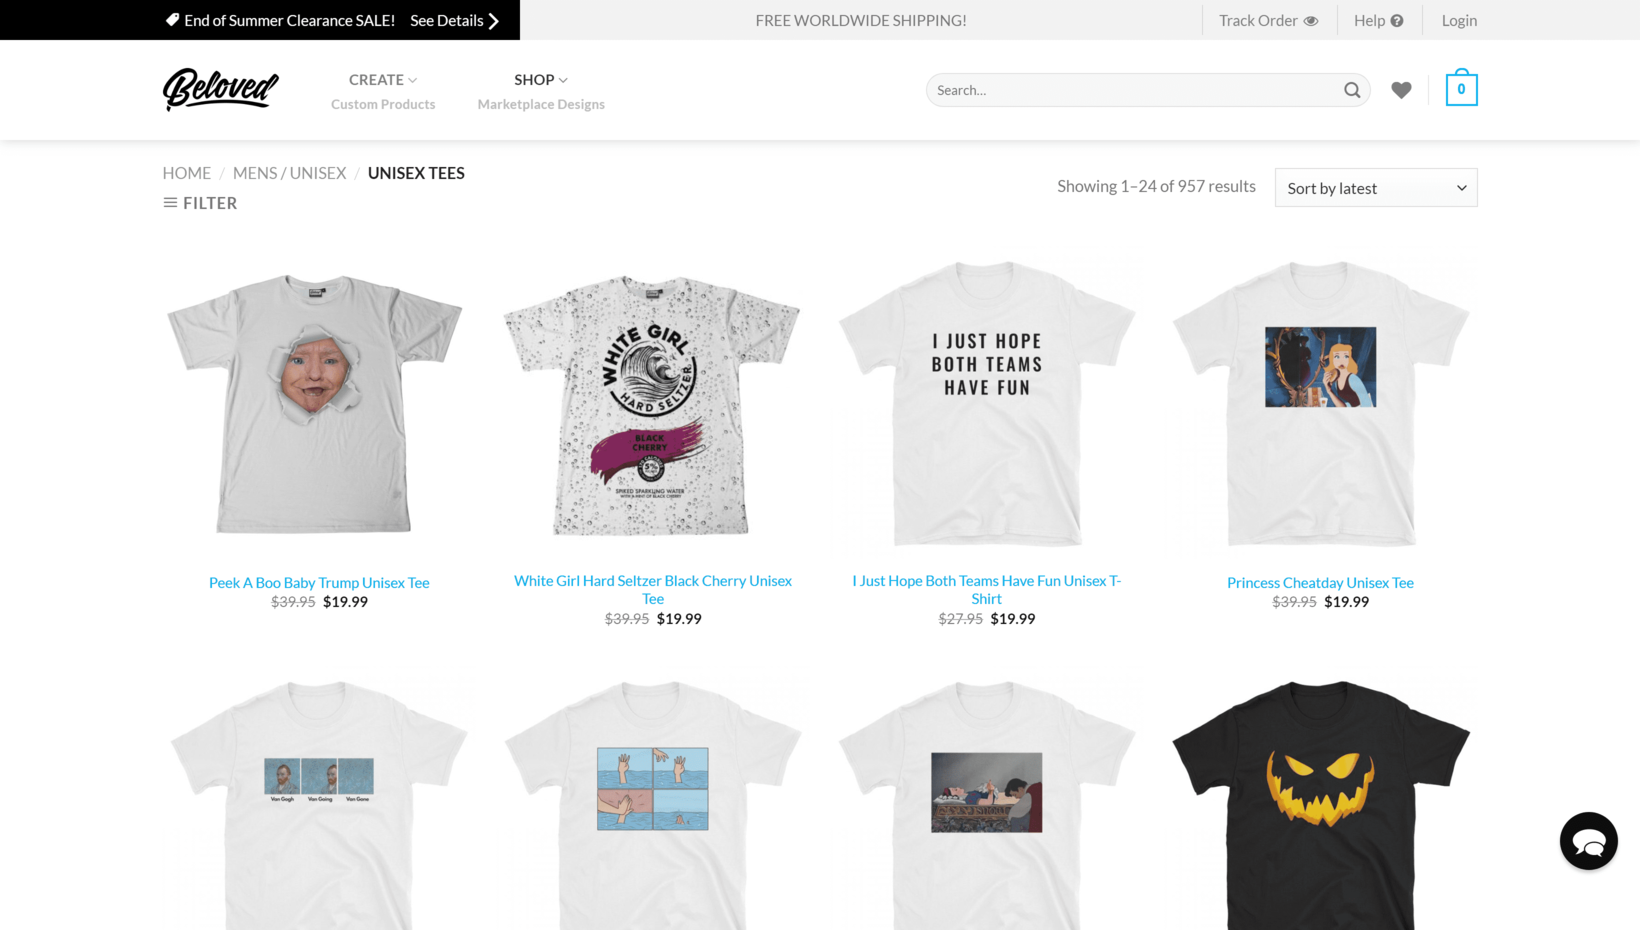 www.belovedshirts.com_product-category_mens-unisex_unisex-tees_